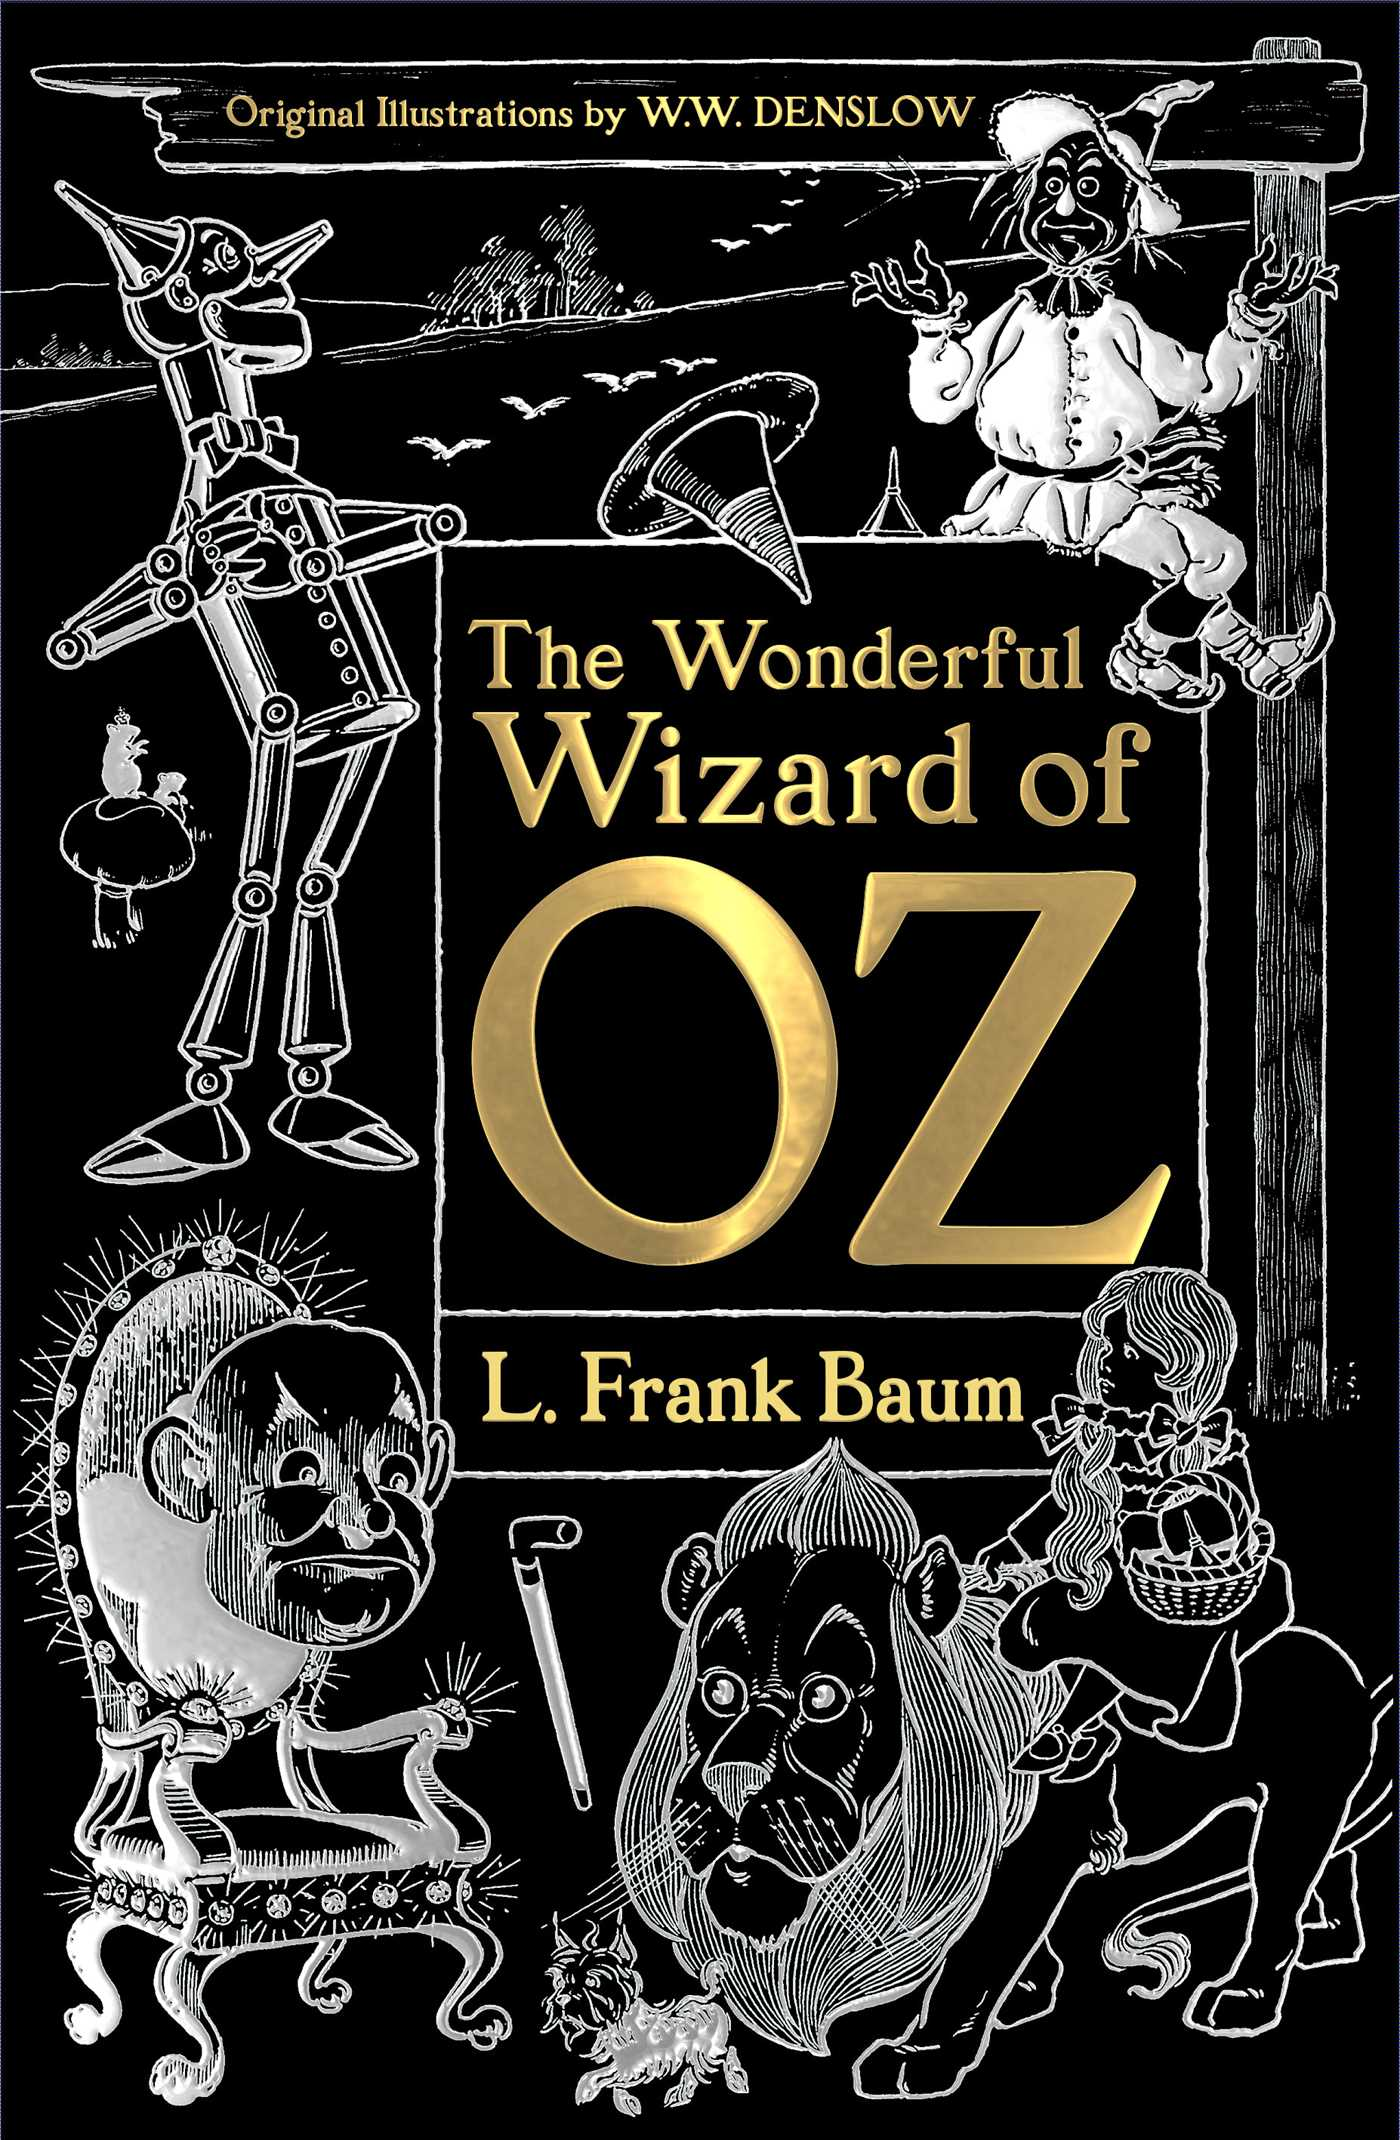 The Wonderful Wizard Of Oz Book By L Frank Baum W W Denslow Jack Zipes Official Publisher Page Simon Schuster